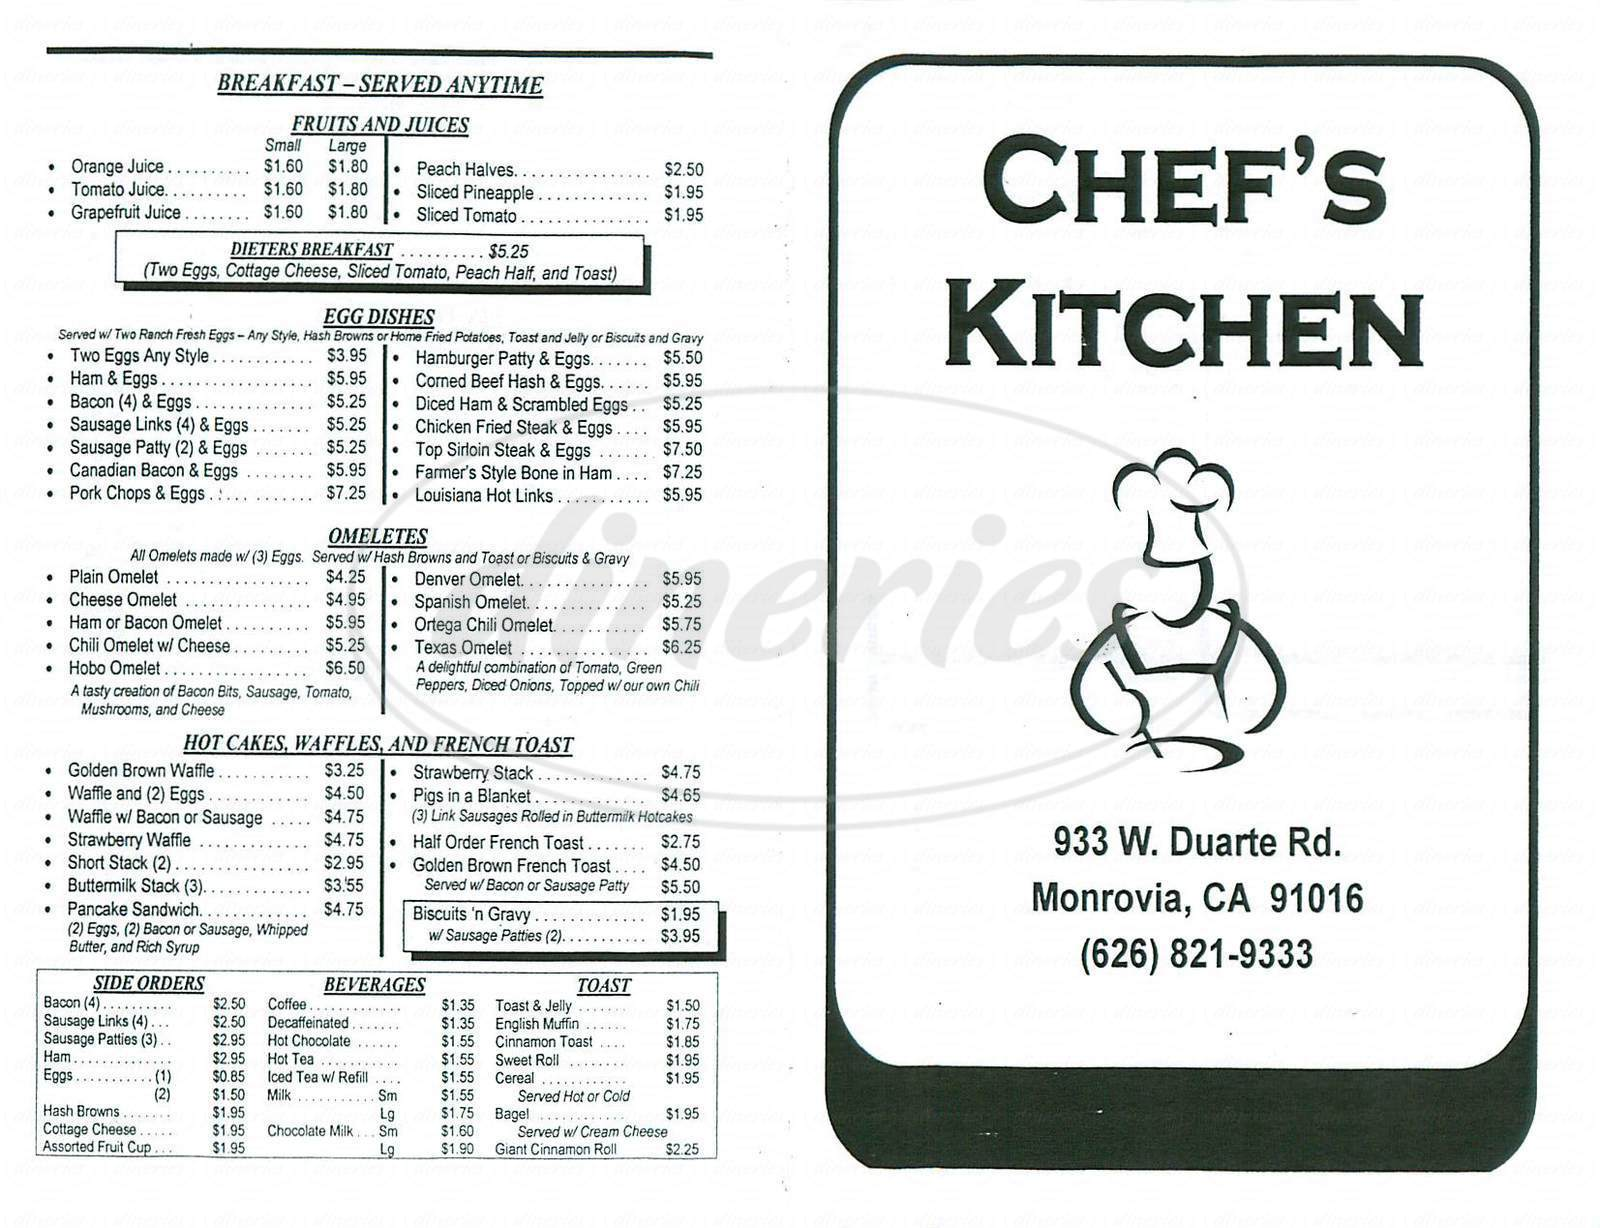 menu for Chefs Kitchen